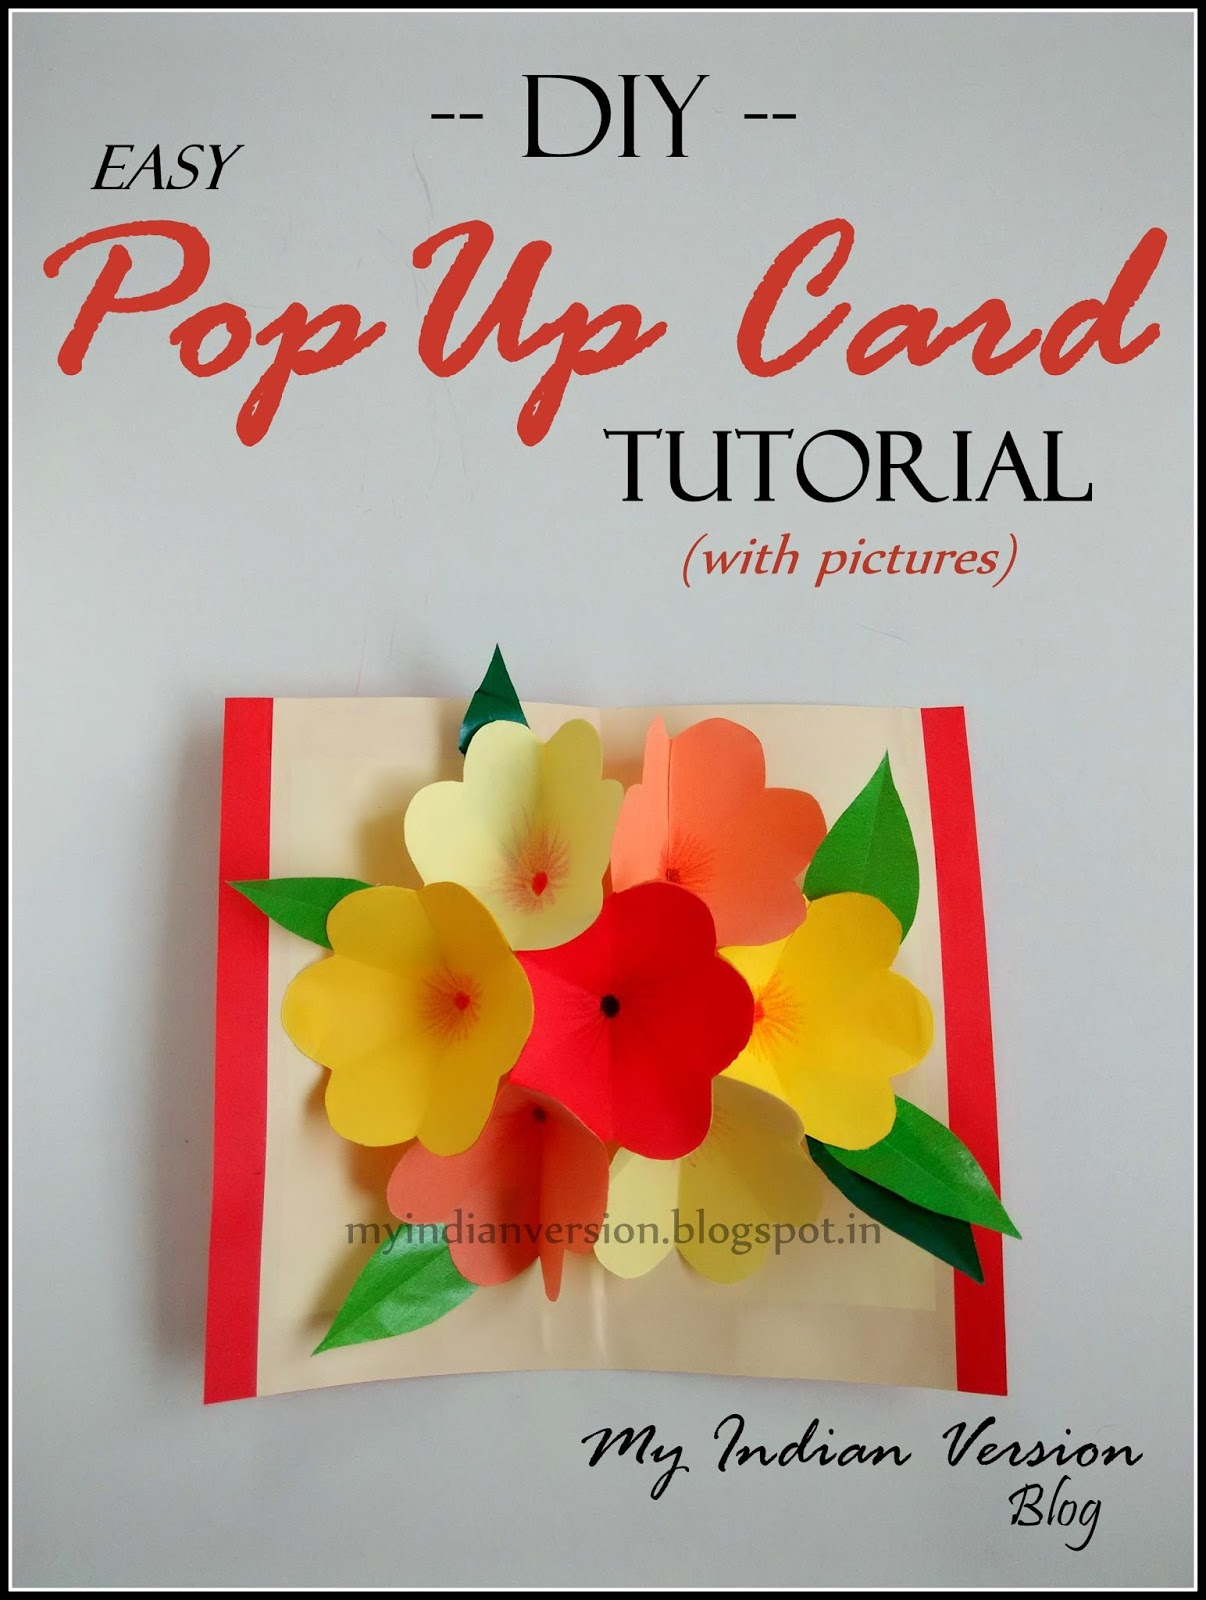 My Indian Version Diy Easy Pop Up Card Photo Tutorial